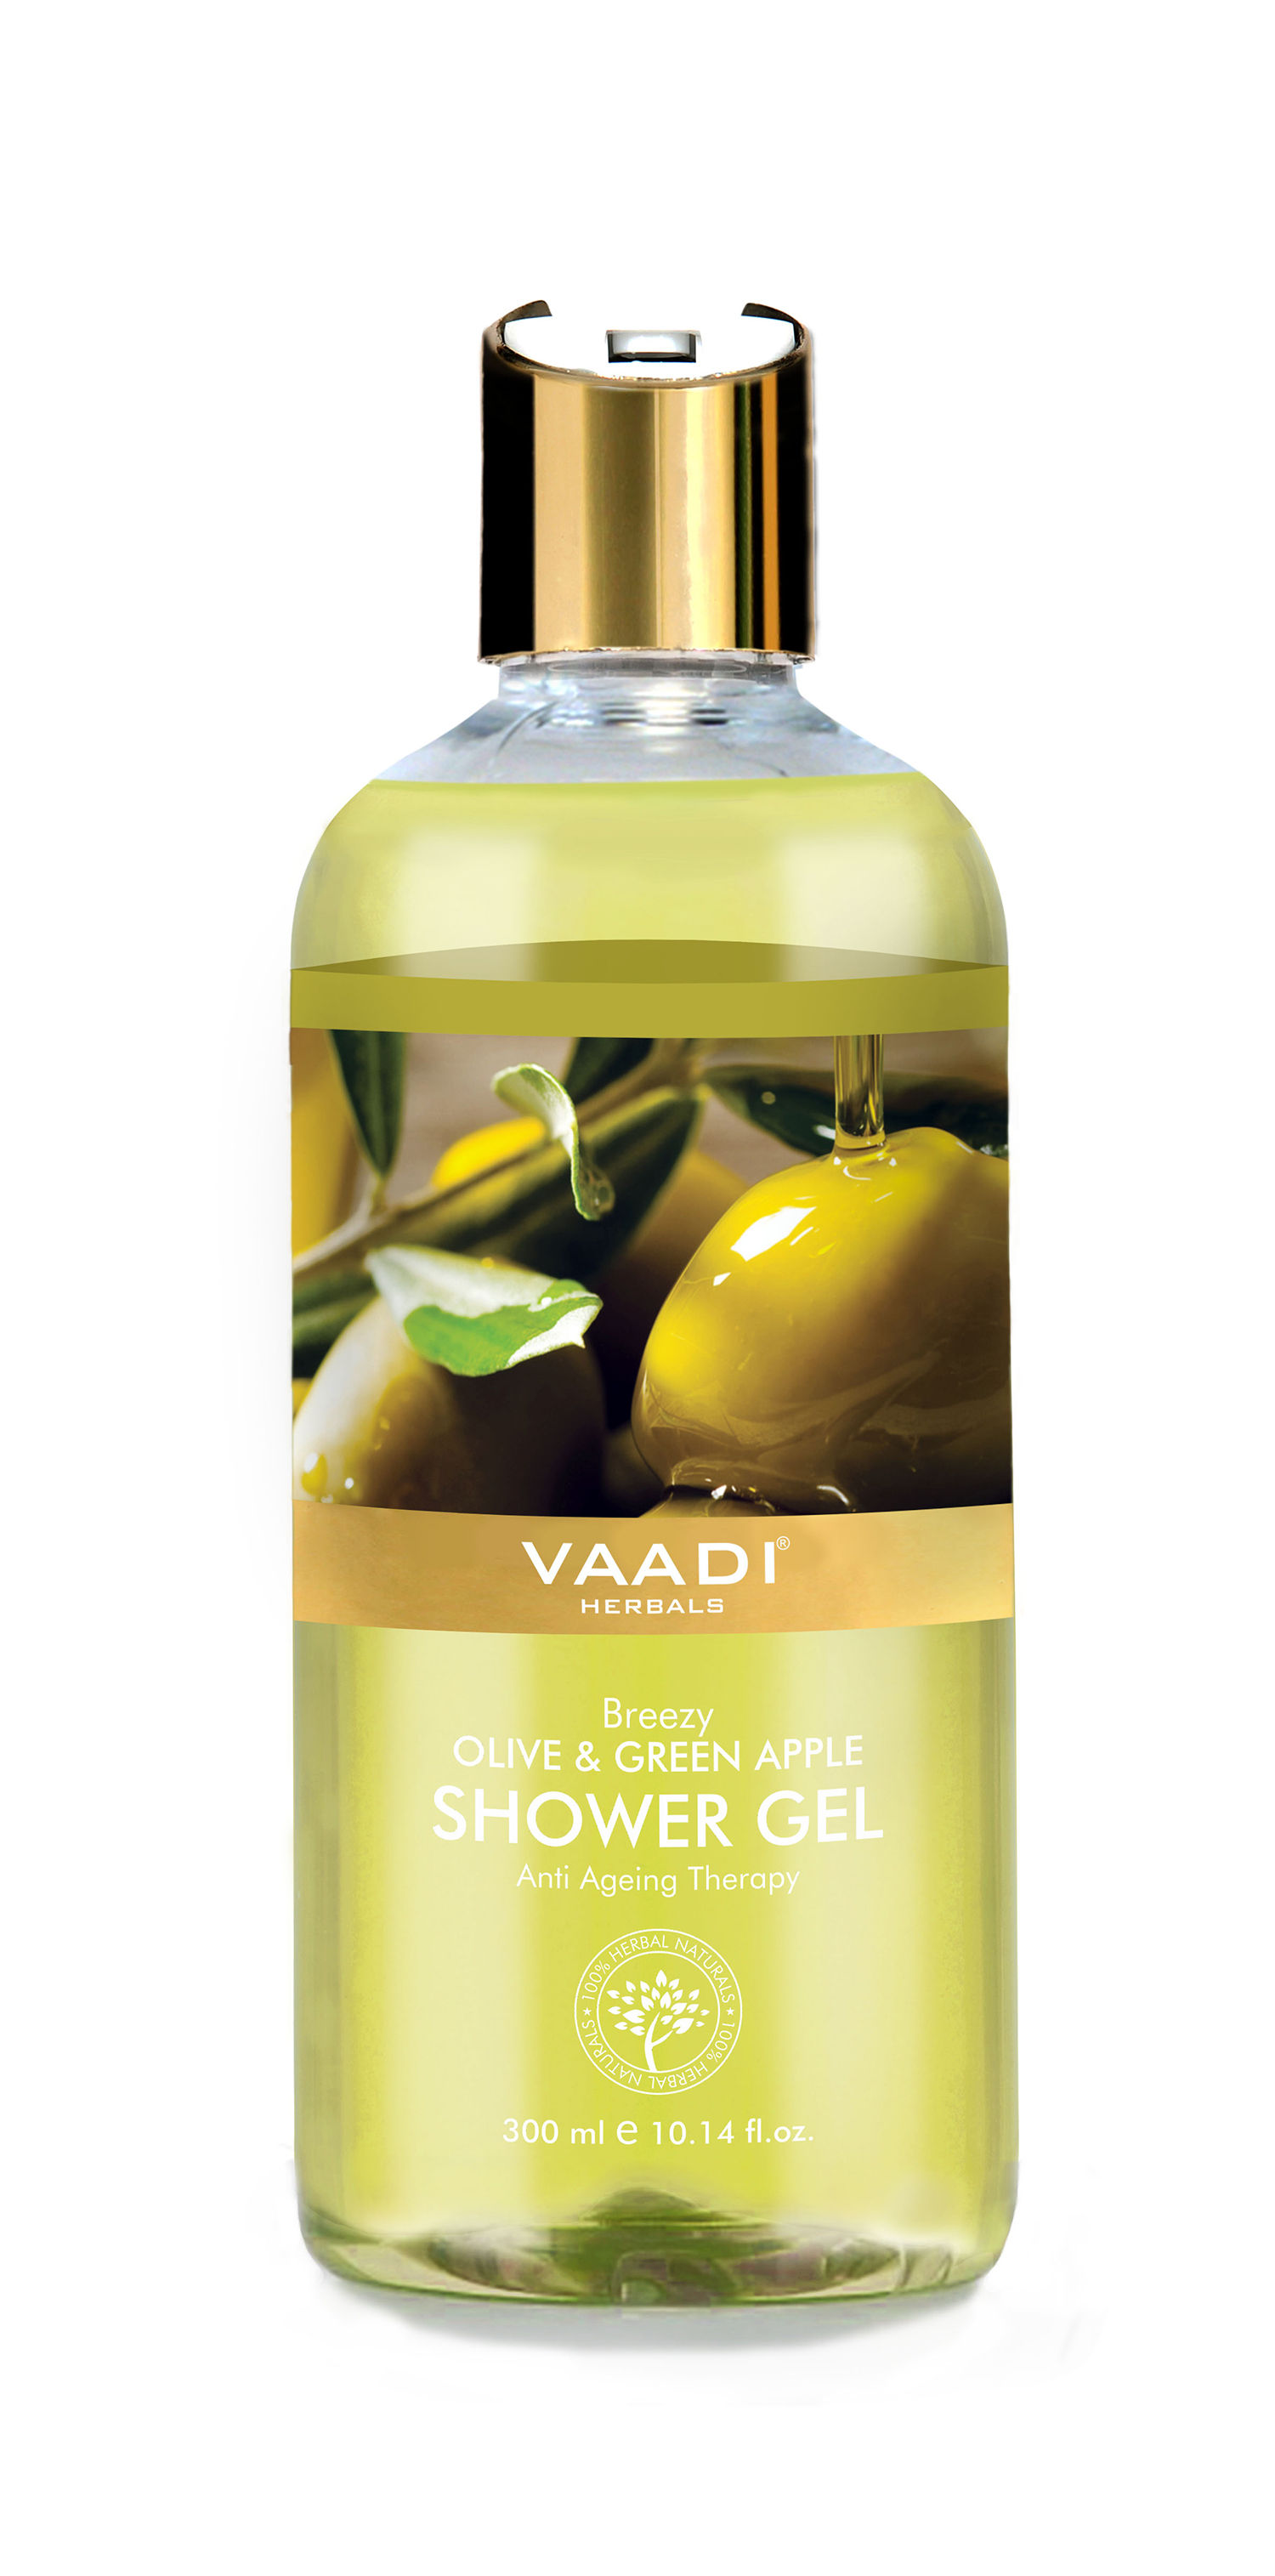 Vaadi Herbals Breezy Olive & Green Apple Shower Gel, 300 ML